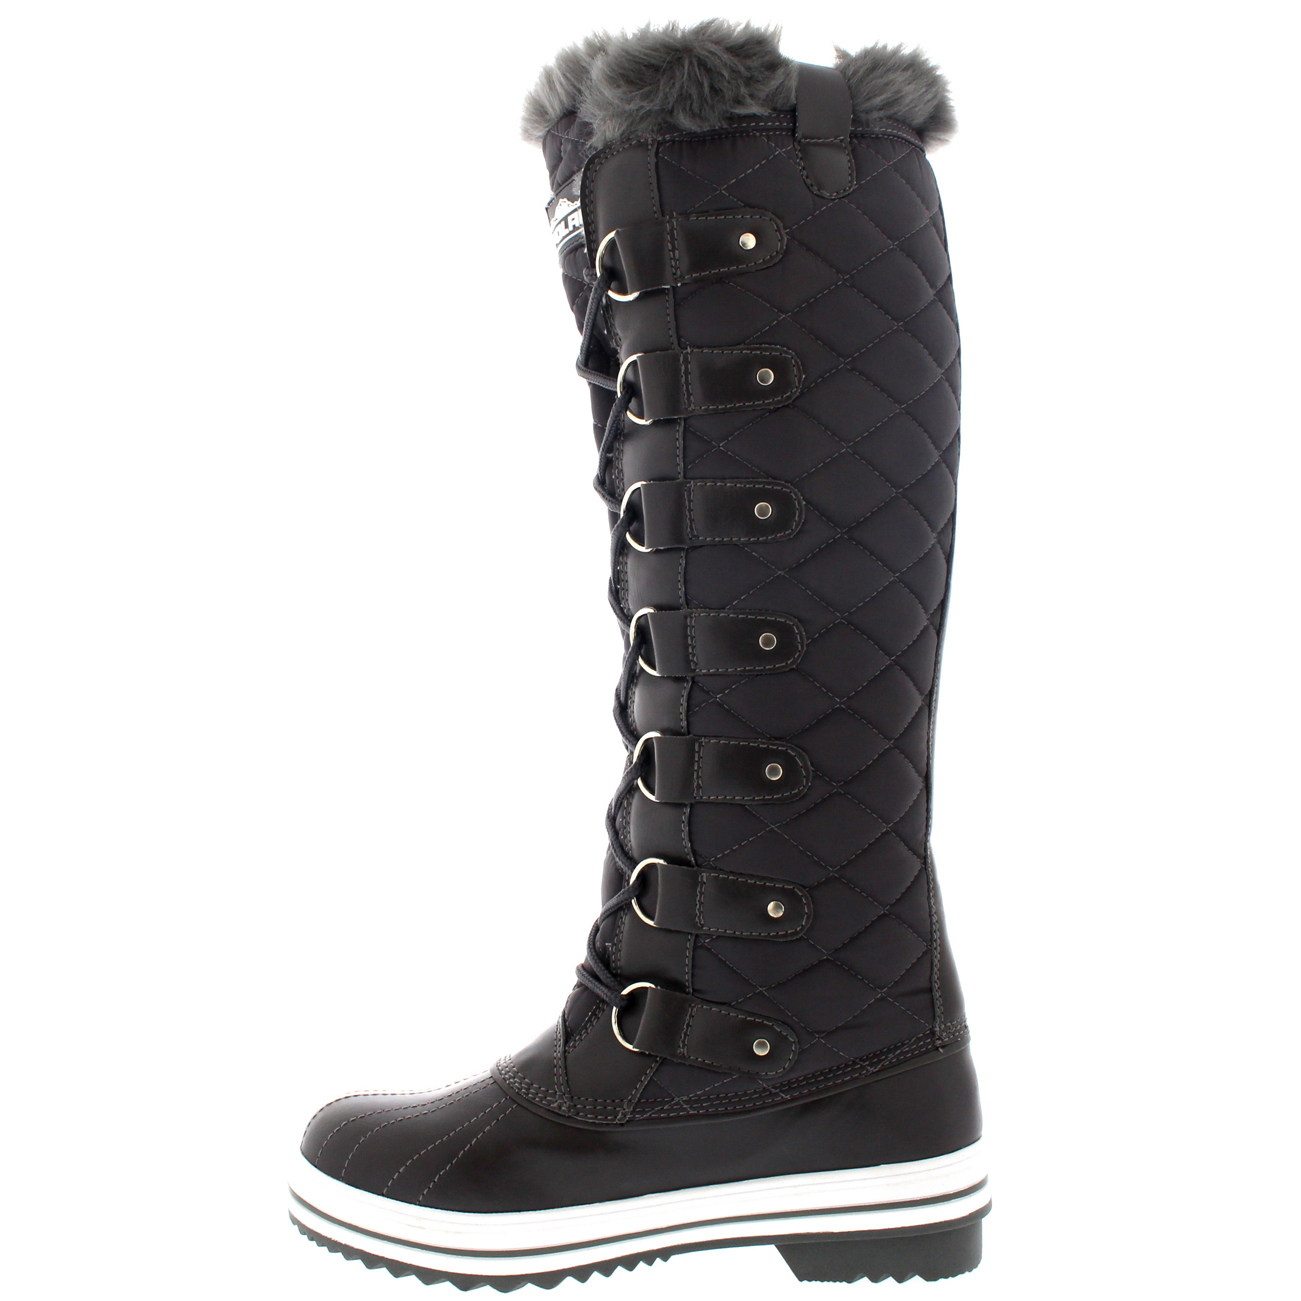 Womens Quilted Knee High Duck Fur Lined Rain Lace Up Muck